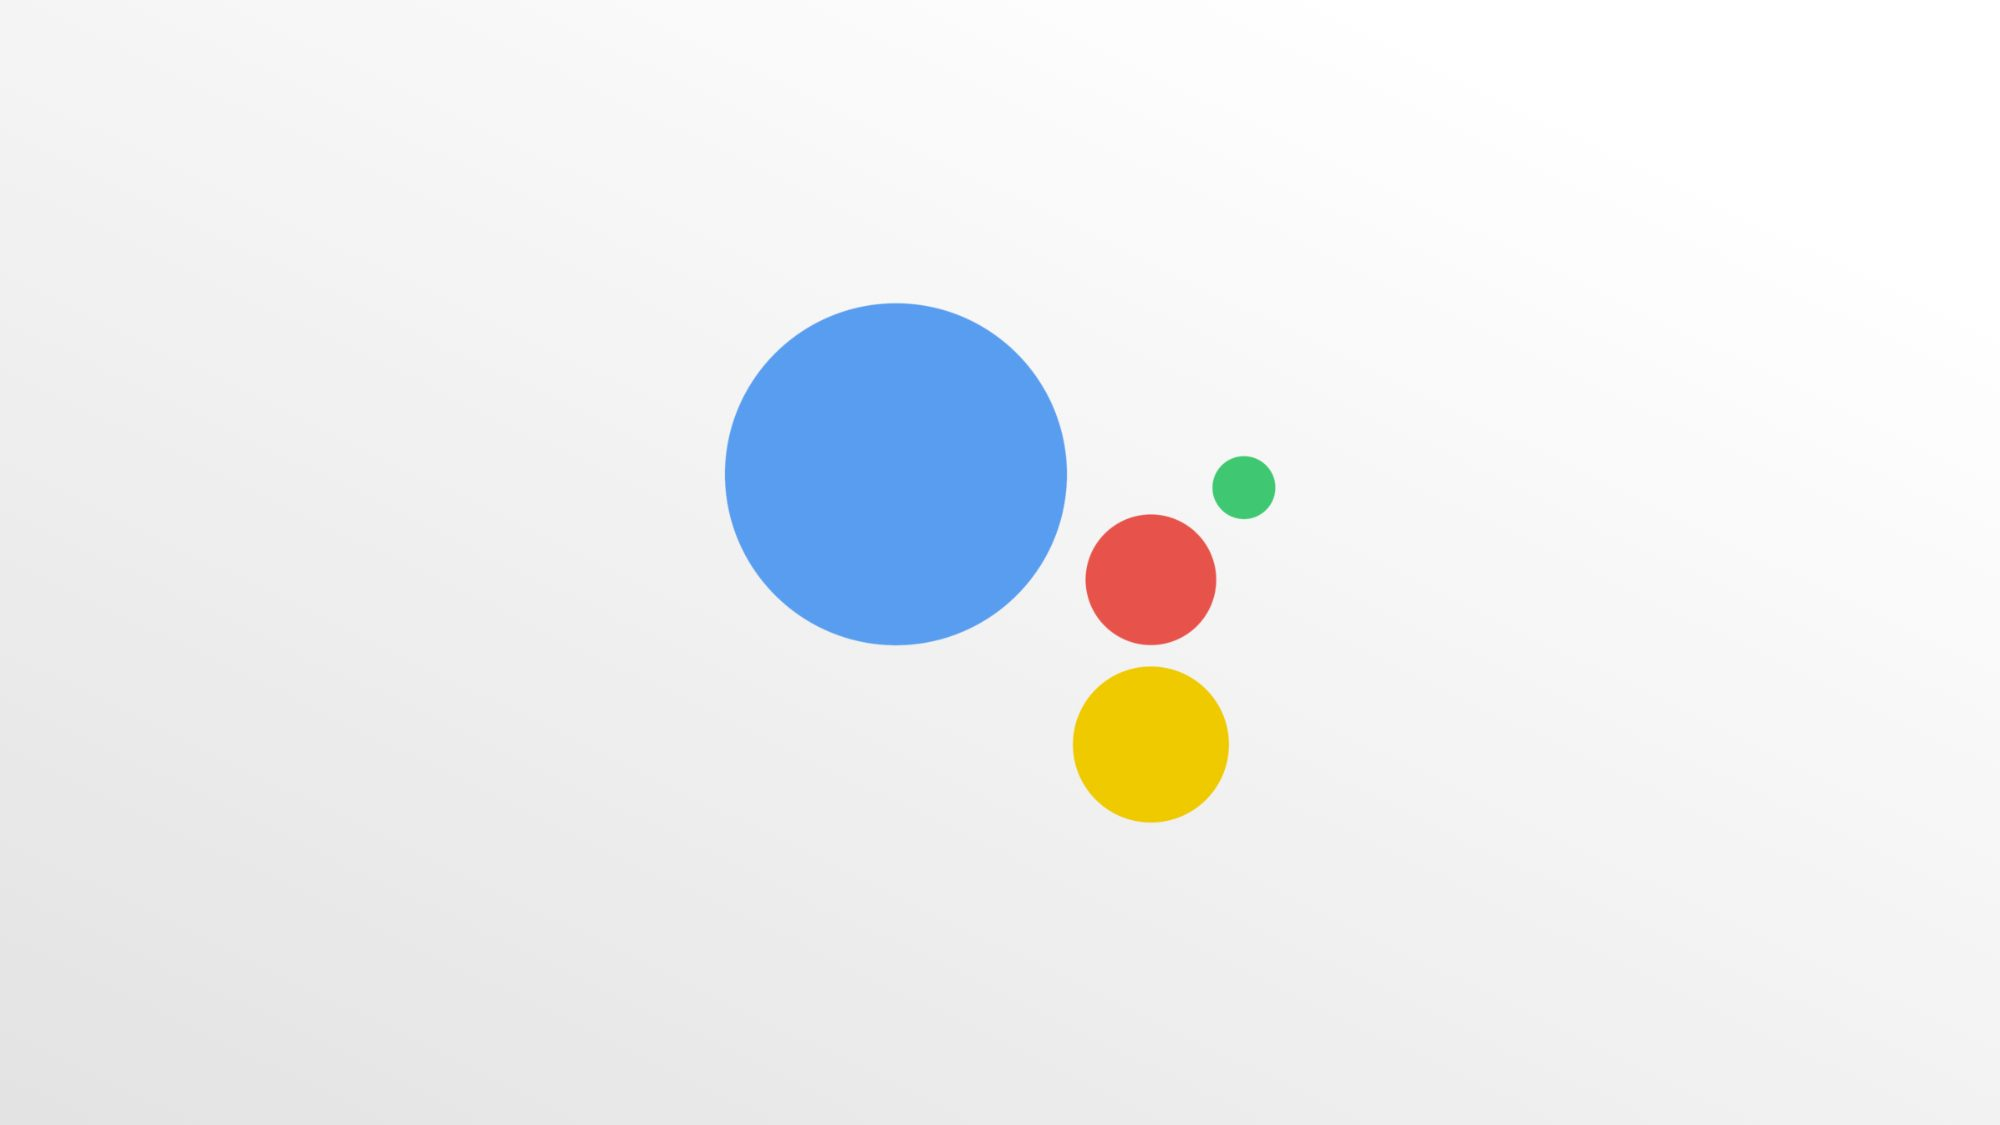 This new Google Assistant feature will let you send reminders to family and friends